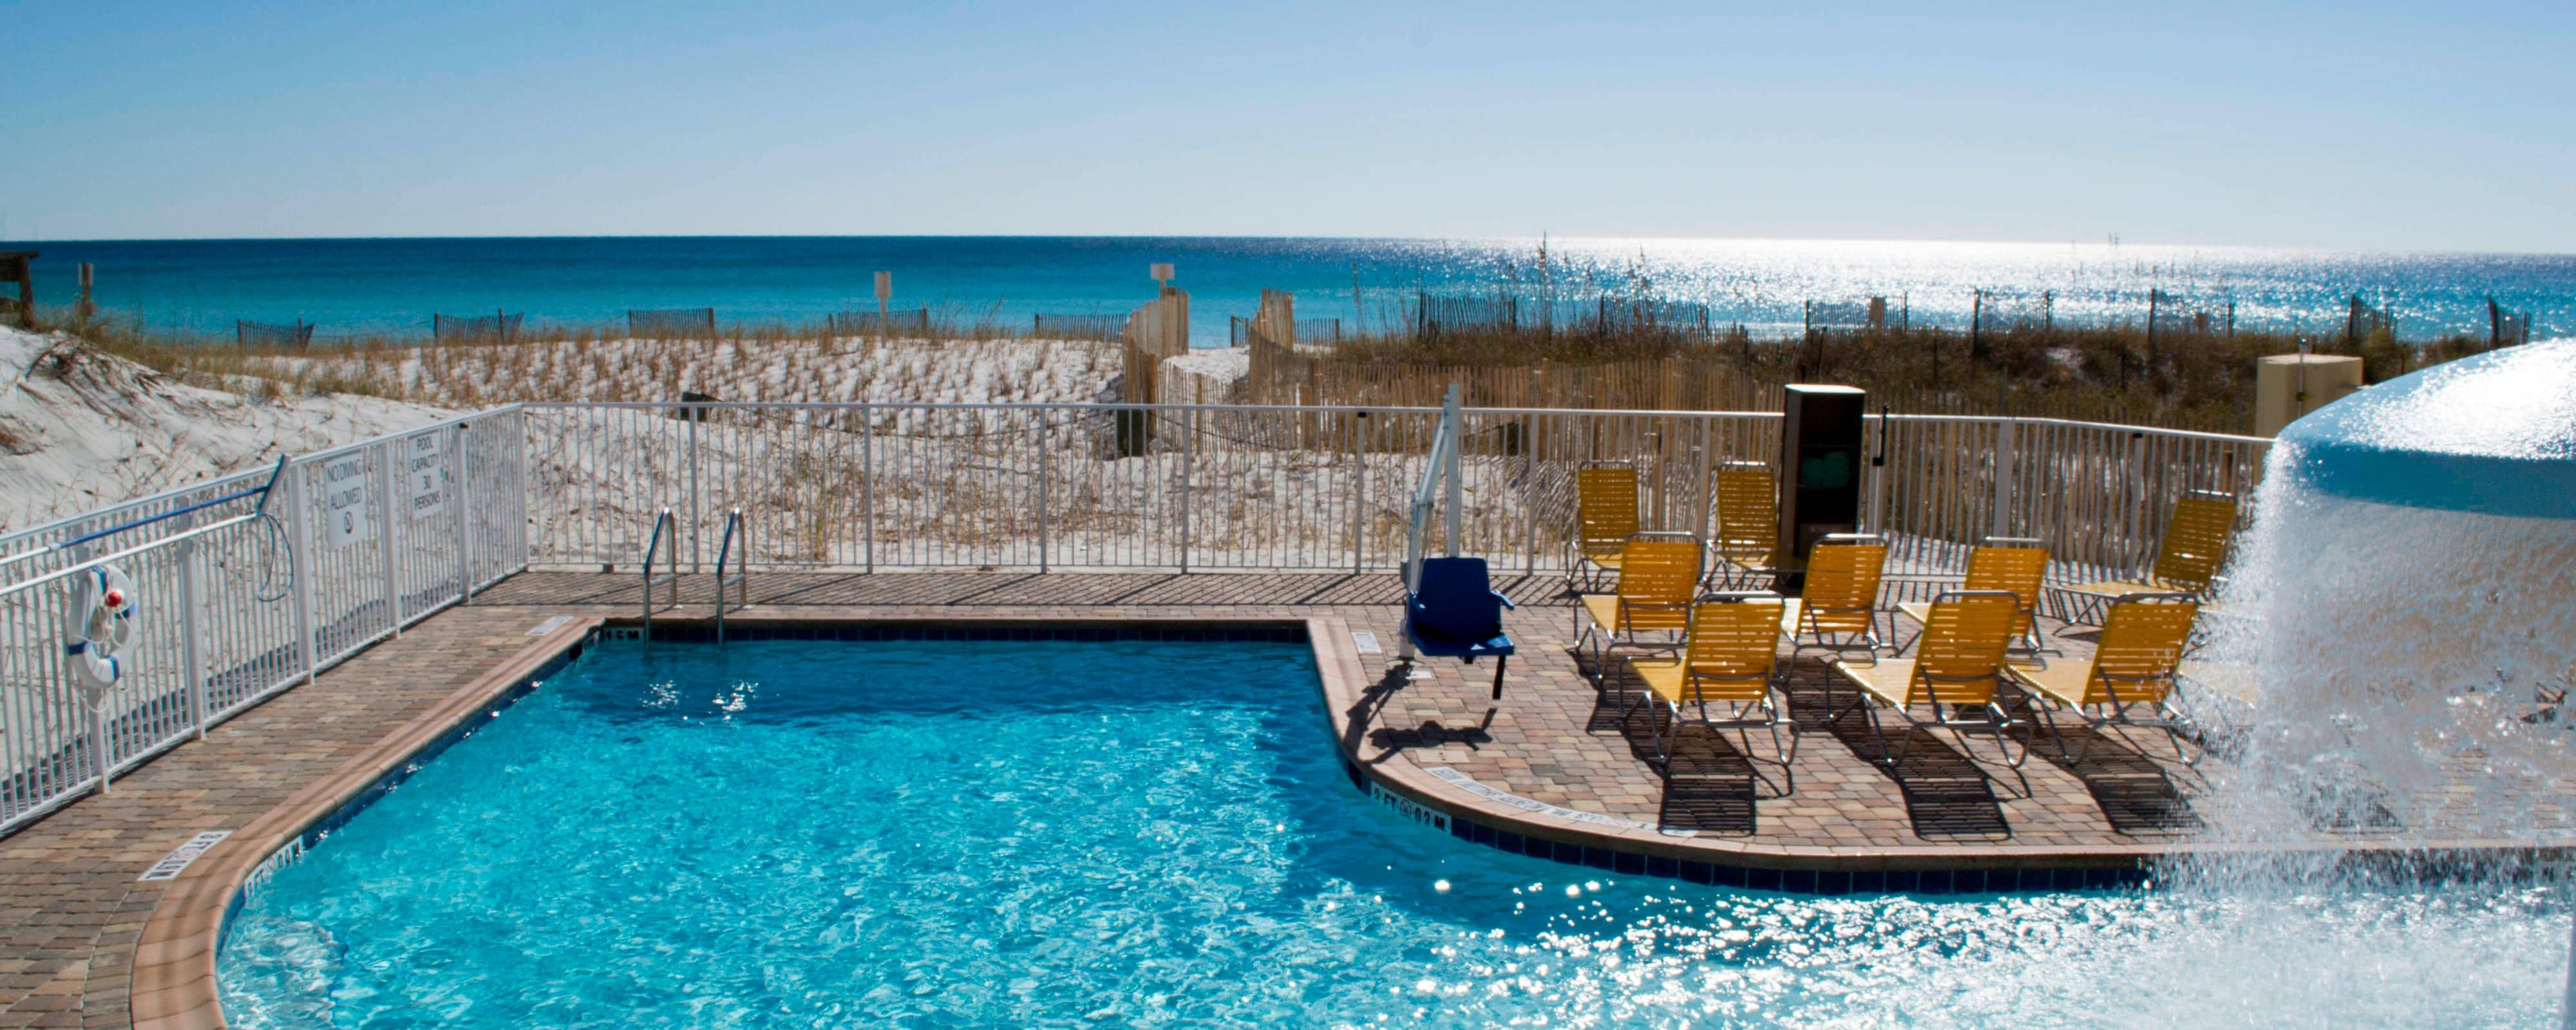 Fort Walton Hotel mit Pool